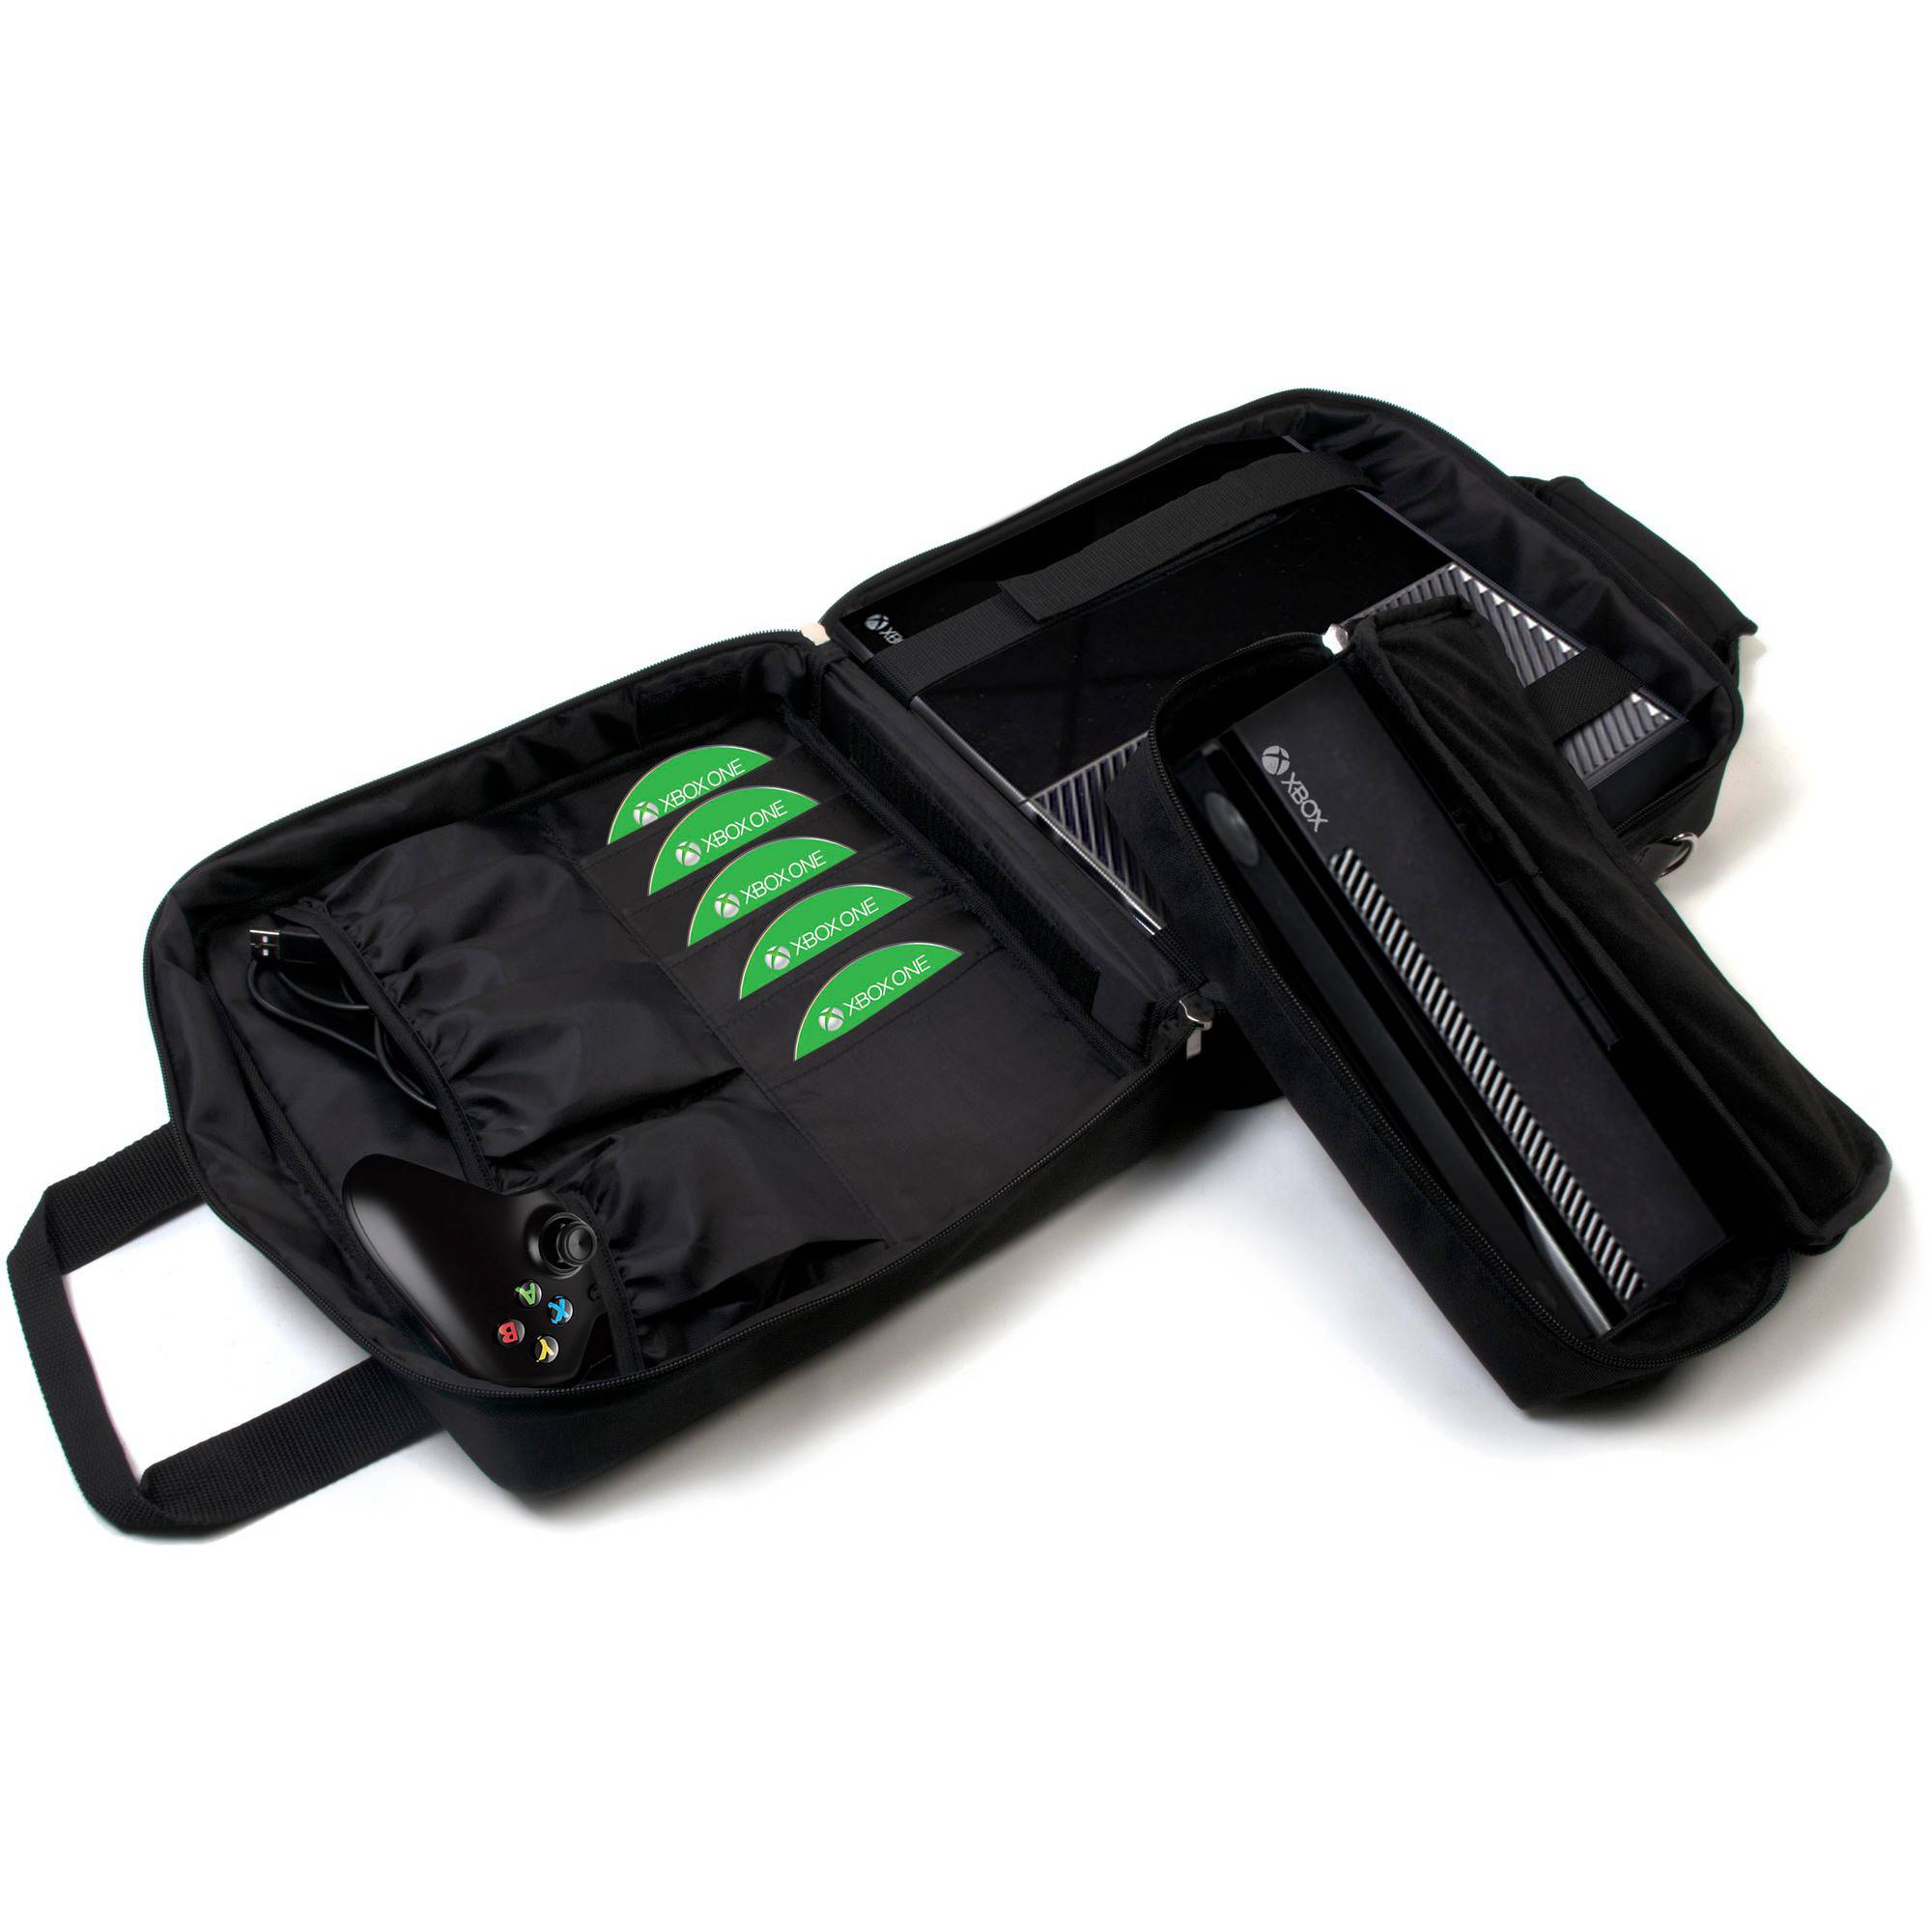 CTA Digital Xb1-mfc Multi-Function Carry Case for Xbox One/Xbox 360/Xbox Slim and Xbox Kinect